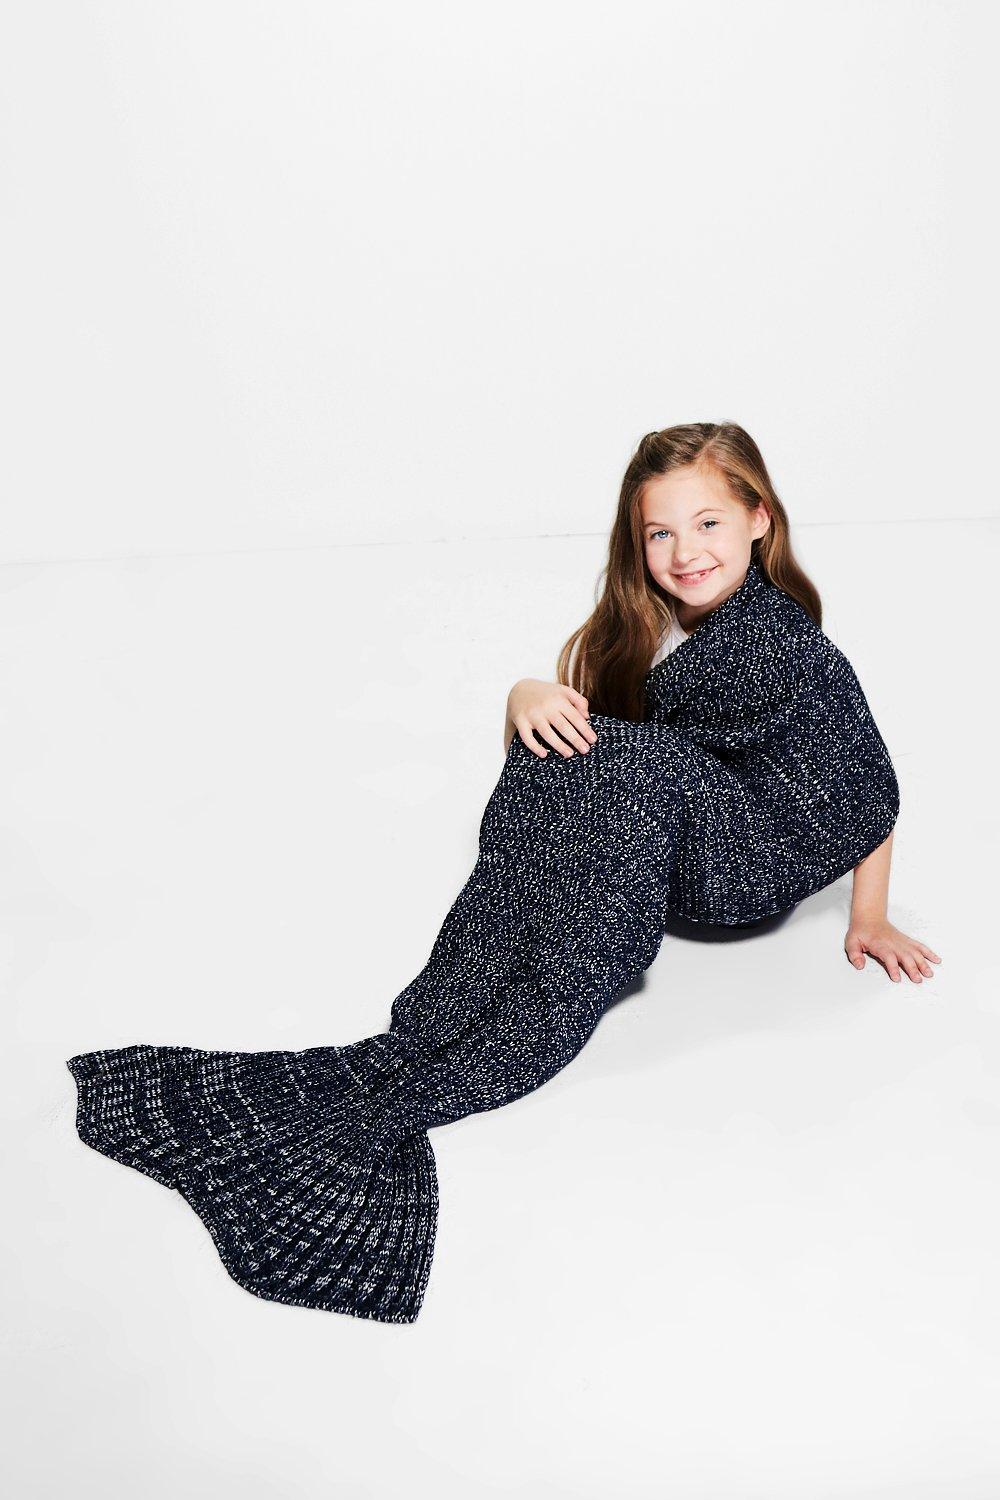 Mermaid Tail Blanket - navy - Girls Mermaid Tail B